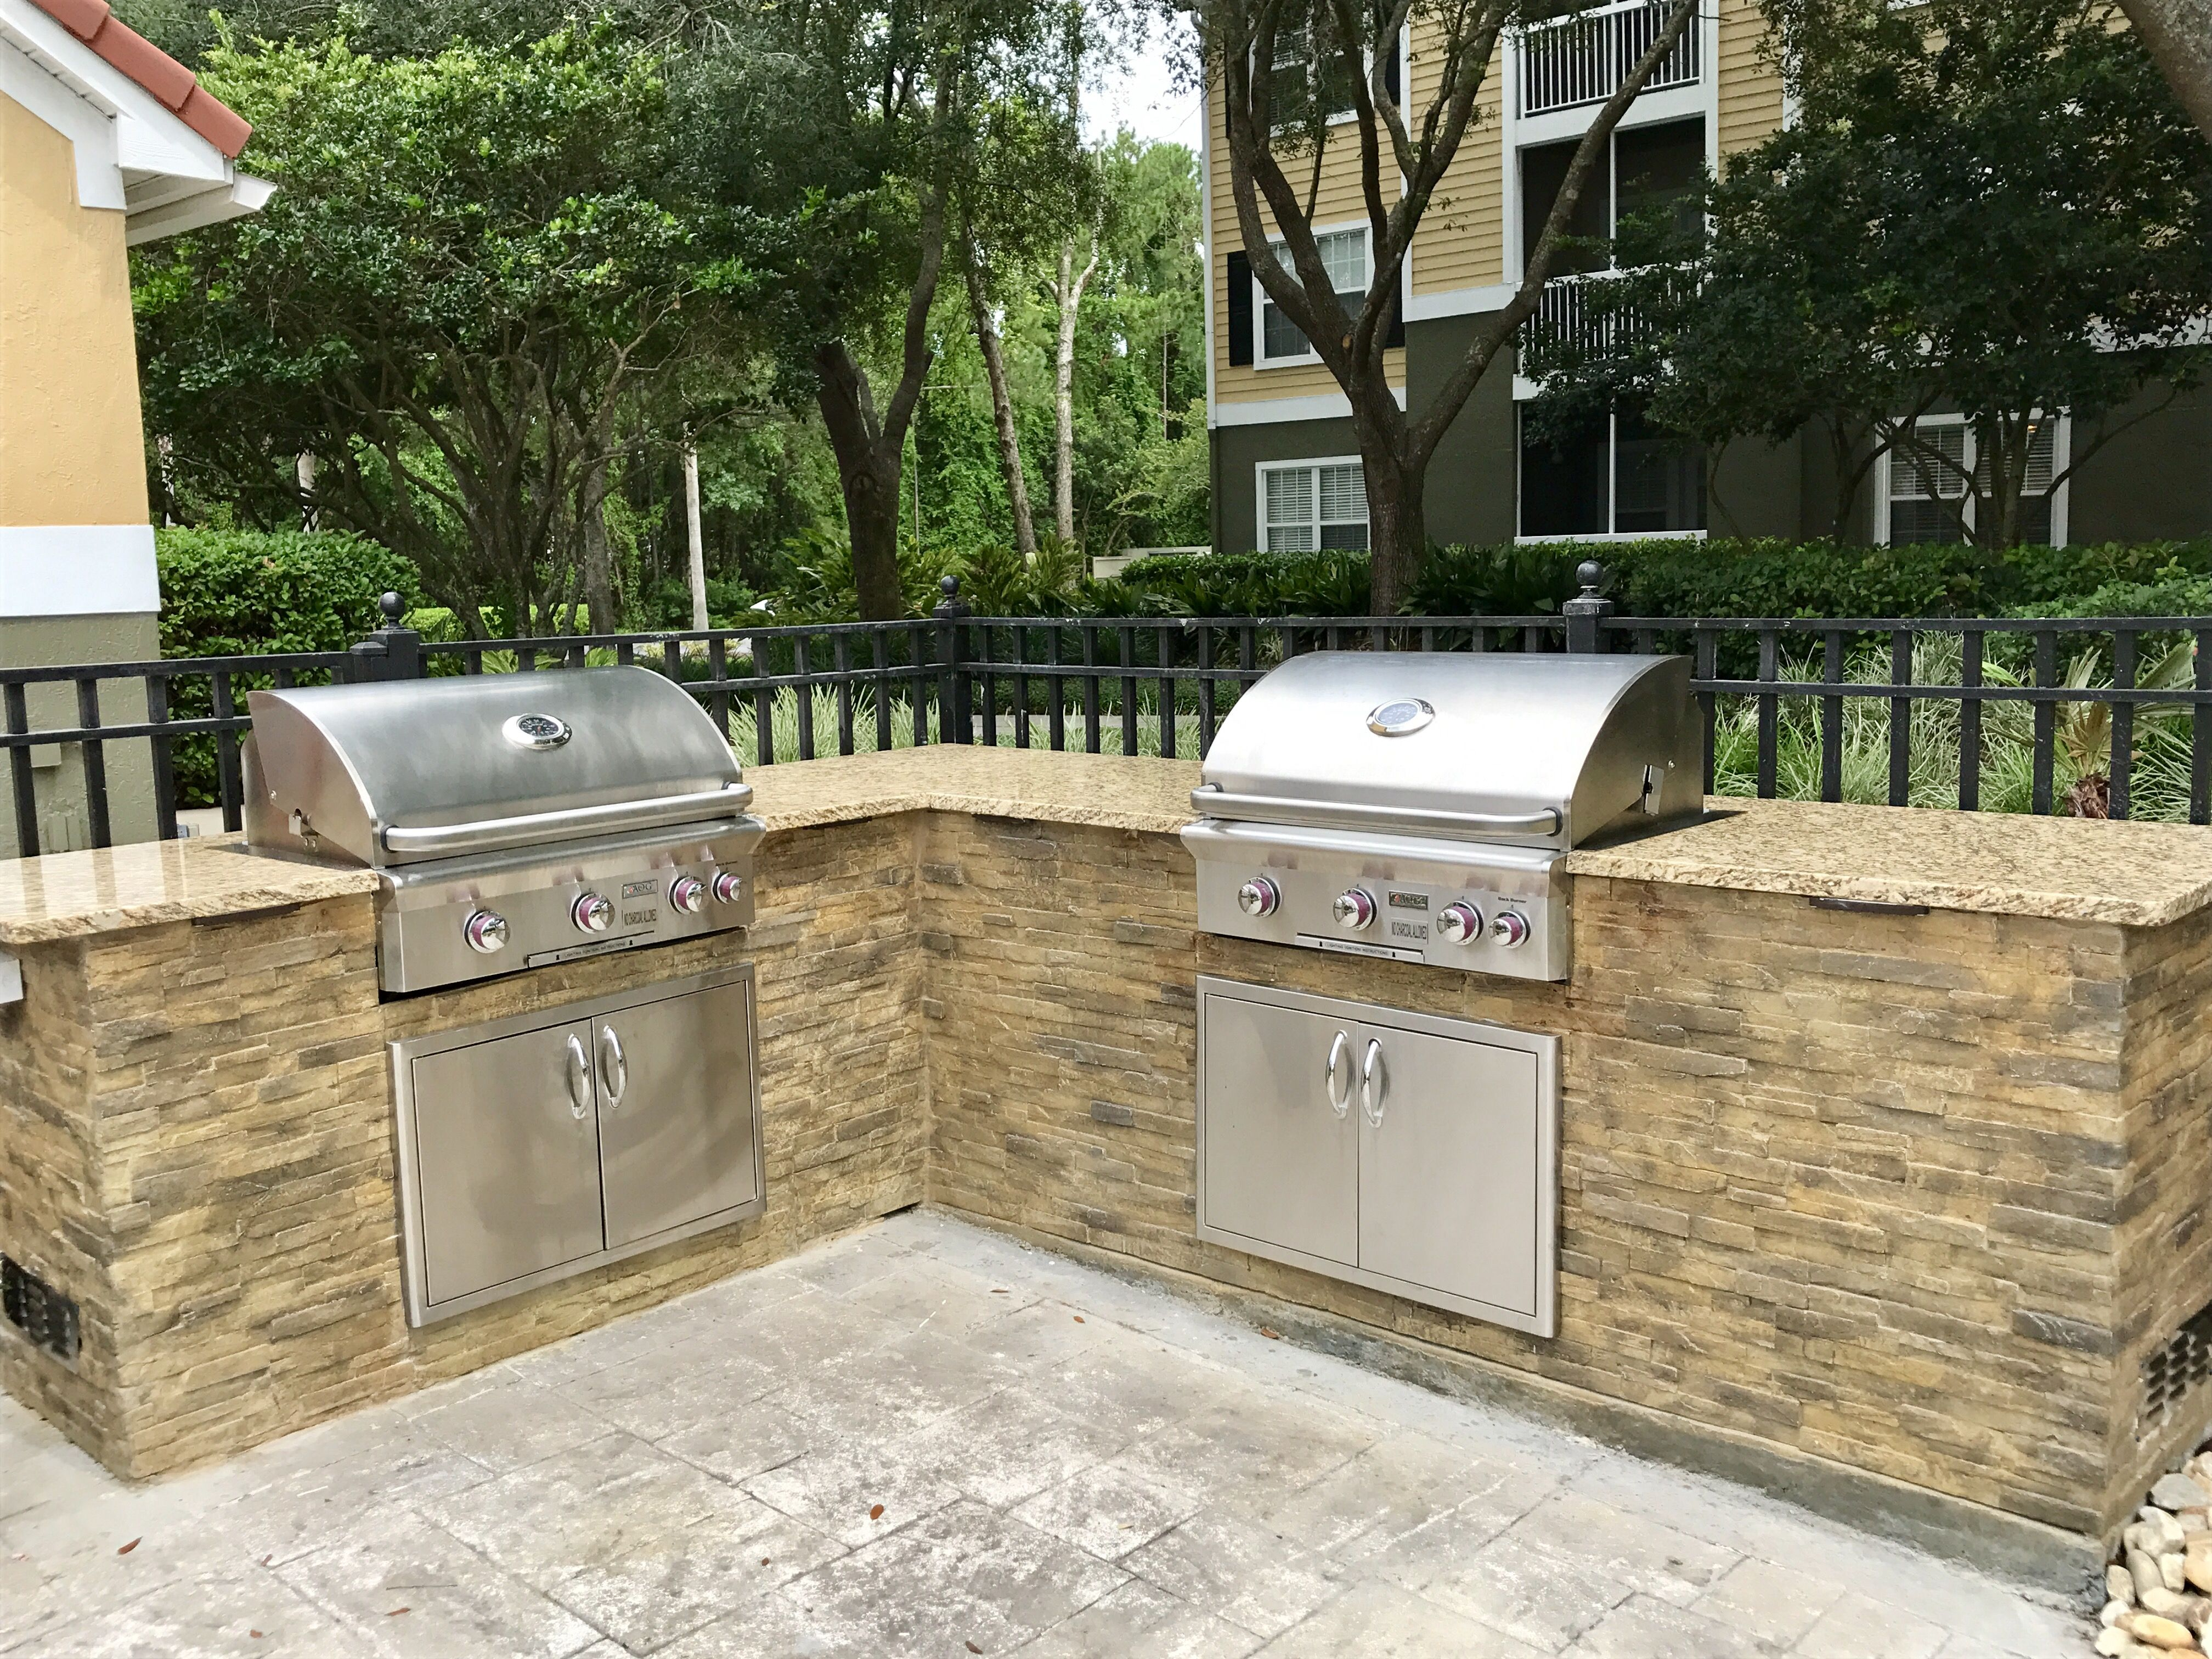 1 Grill Or 2 Grills L Shaped Or U Shaped What Ever It May Be You Can Only Get Your Dream Out Outdoor Kitchen Outdoor Kitchen Countertops Outdoor Appliances